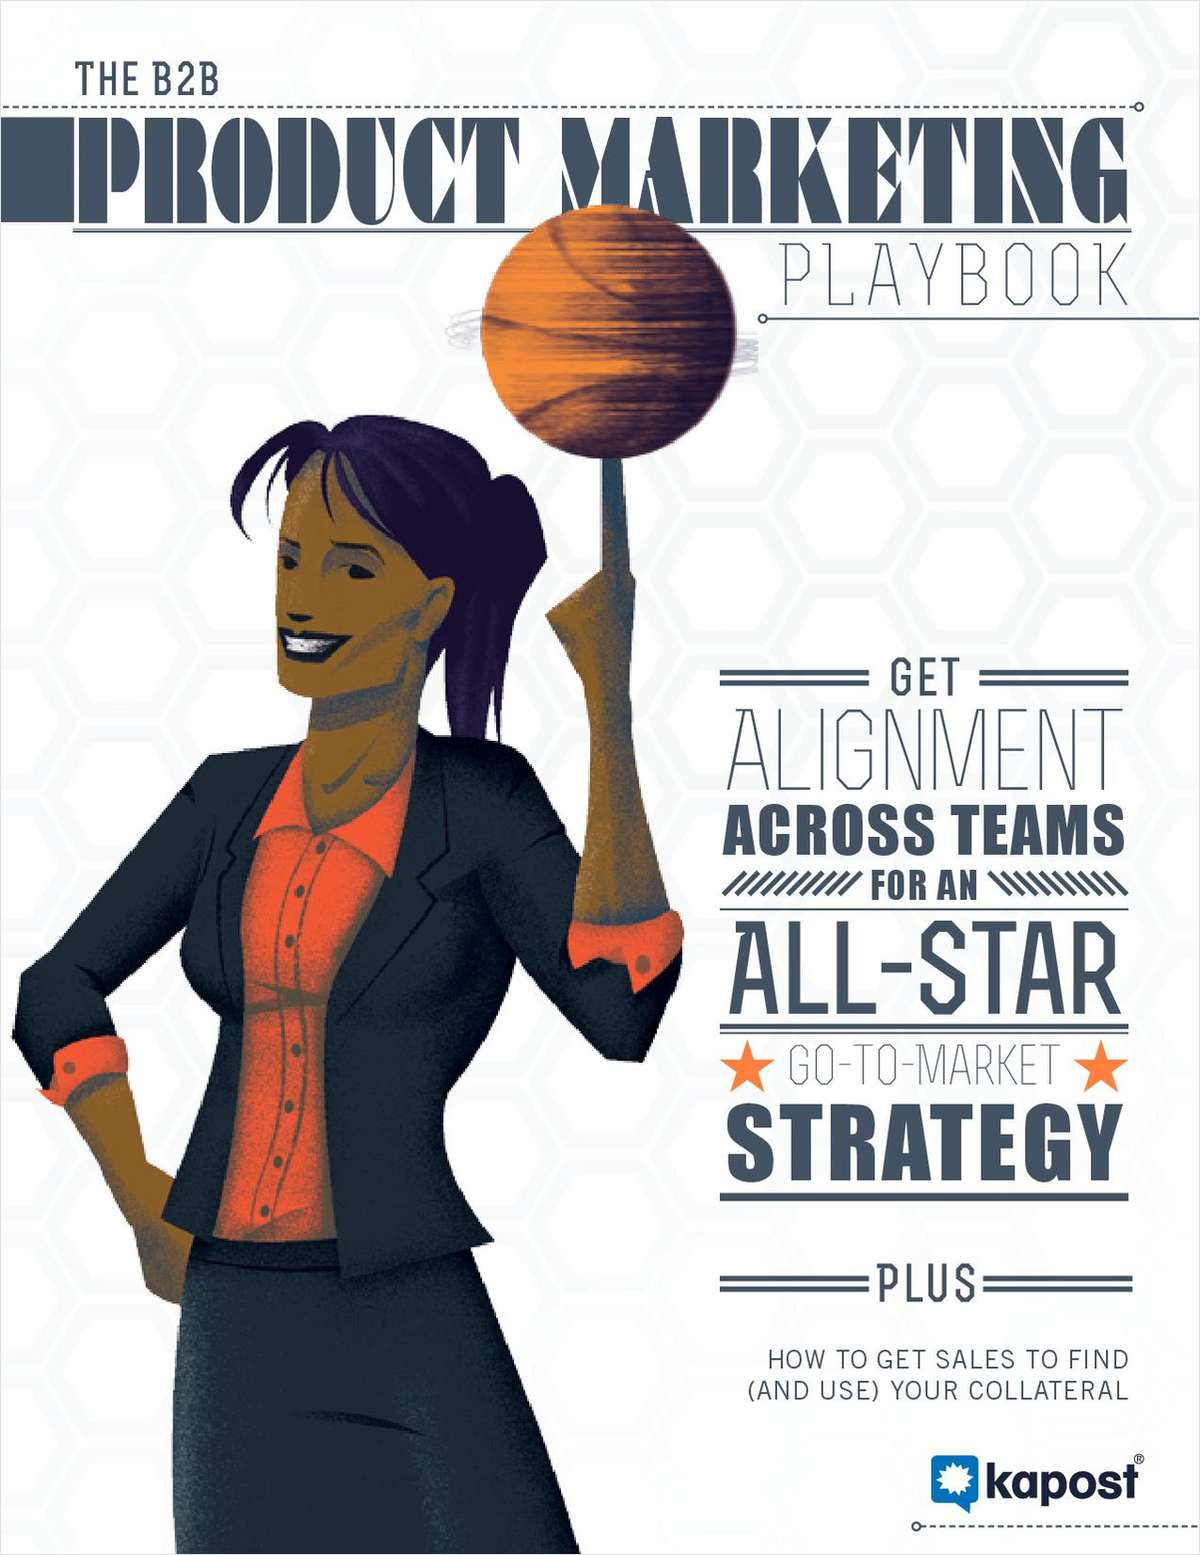 The B2B Product Marketing Playbook